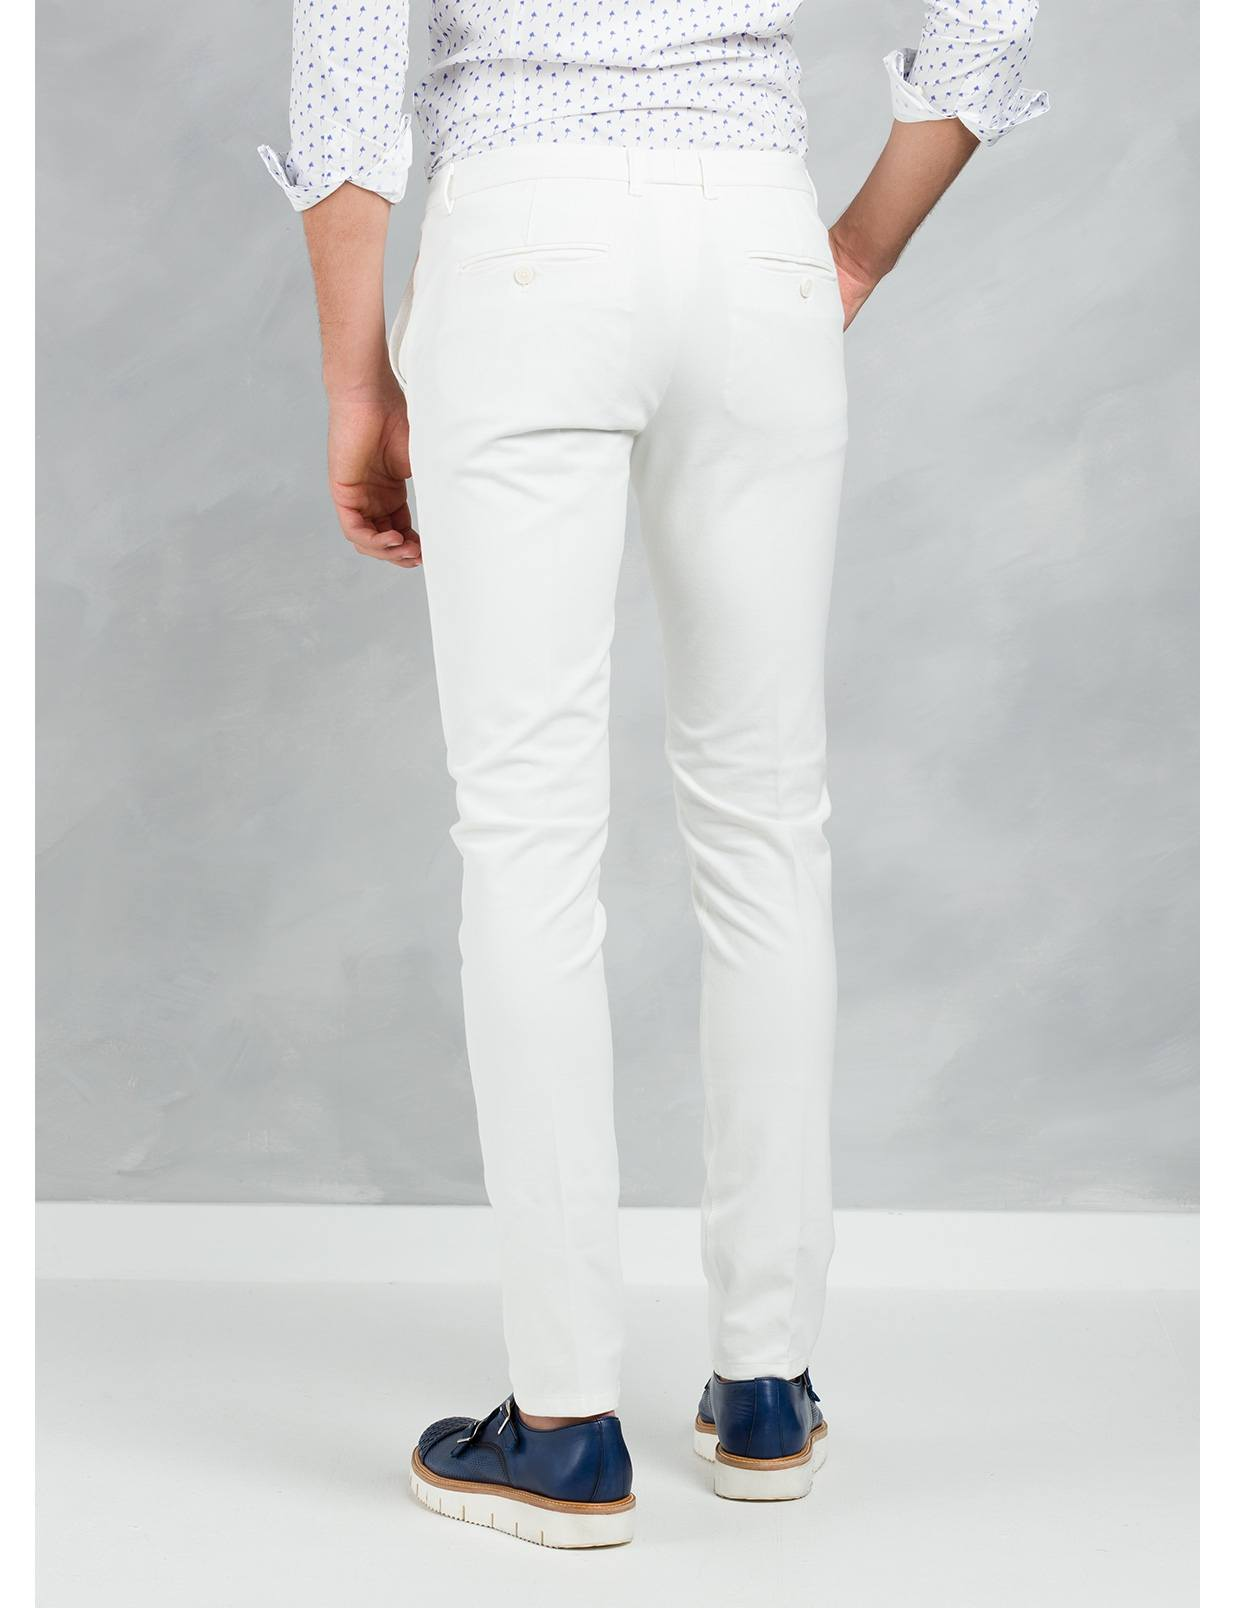 Pantalón chino SLIM FIT color crudo, algodón piquet. - Ítem2